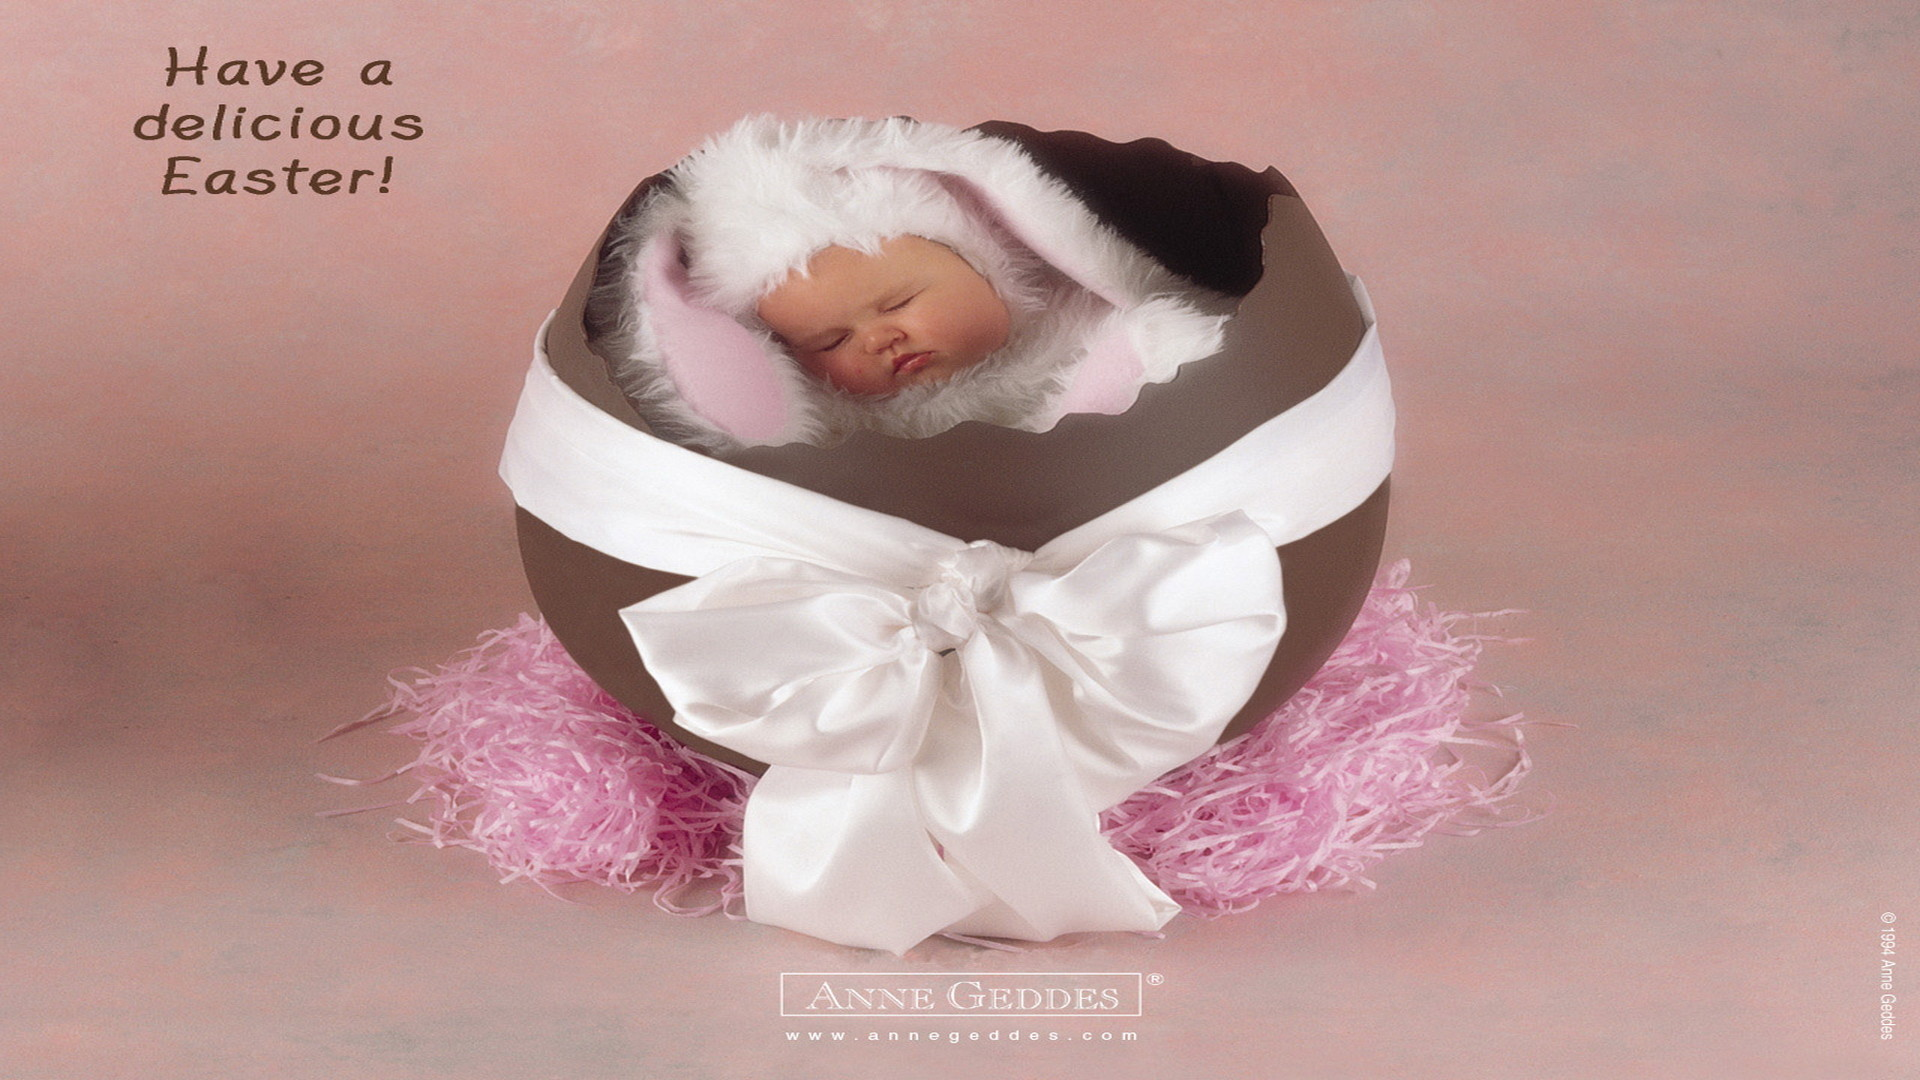 an analysis of the topic of anne geddes and the creative backgrounds An analysis of the topic of anne geddes and the creative backgrounds hersch without having an analysis of guilt in fifth business a novel by robertson davies.